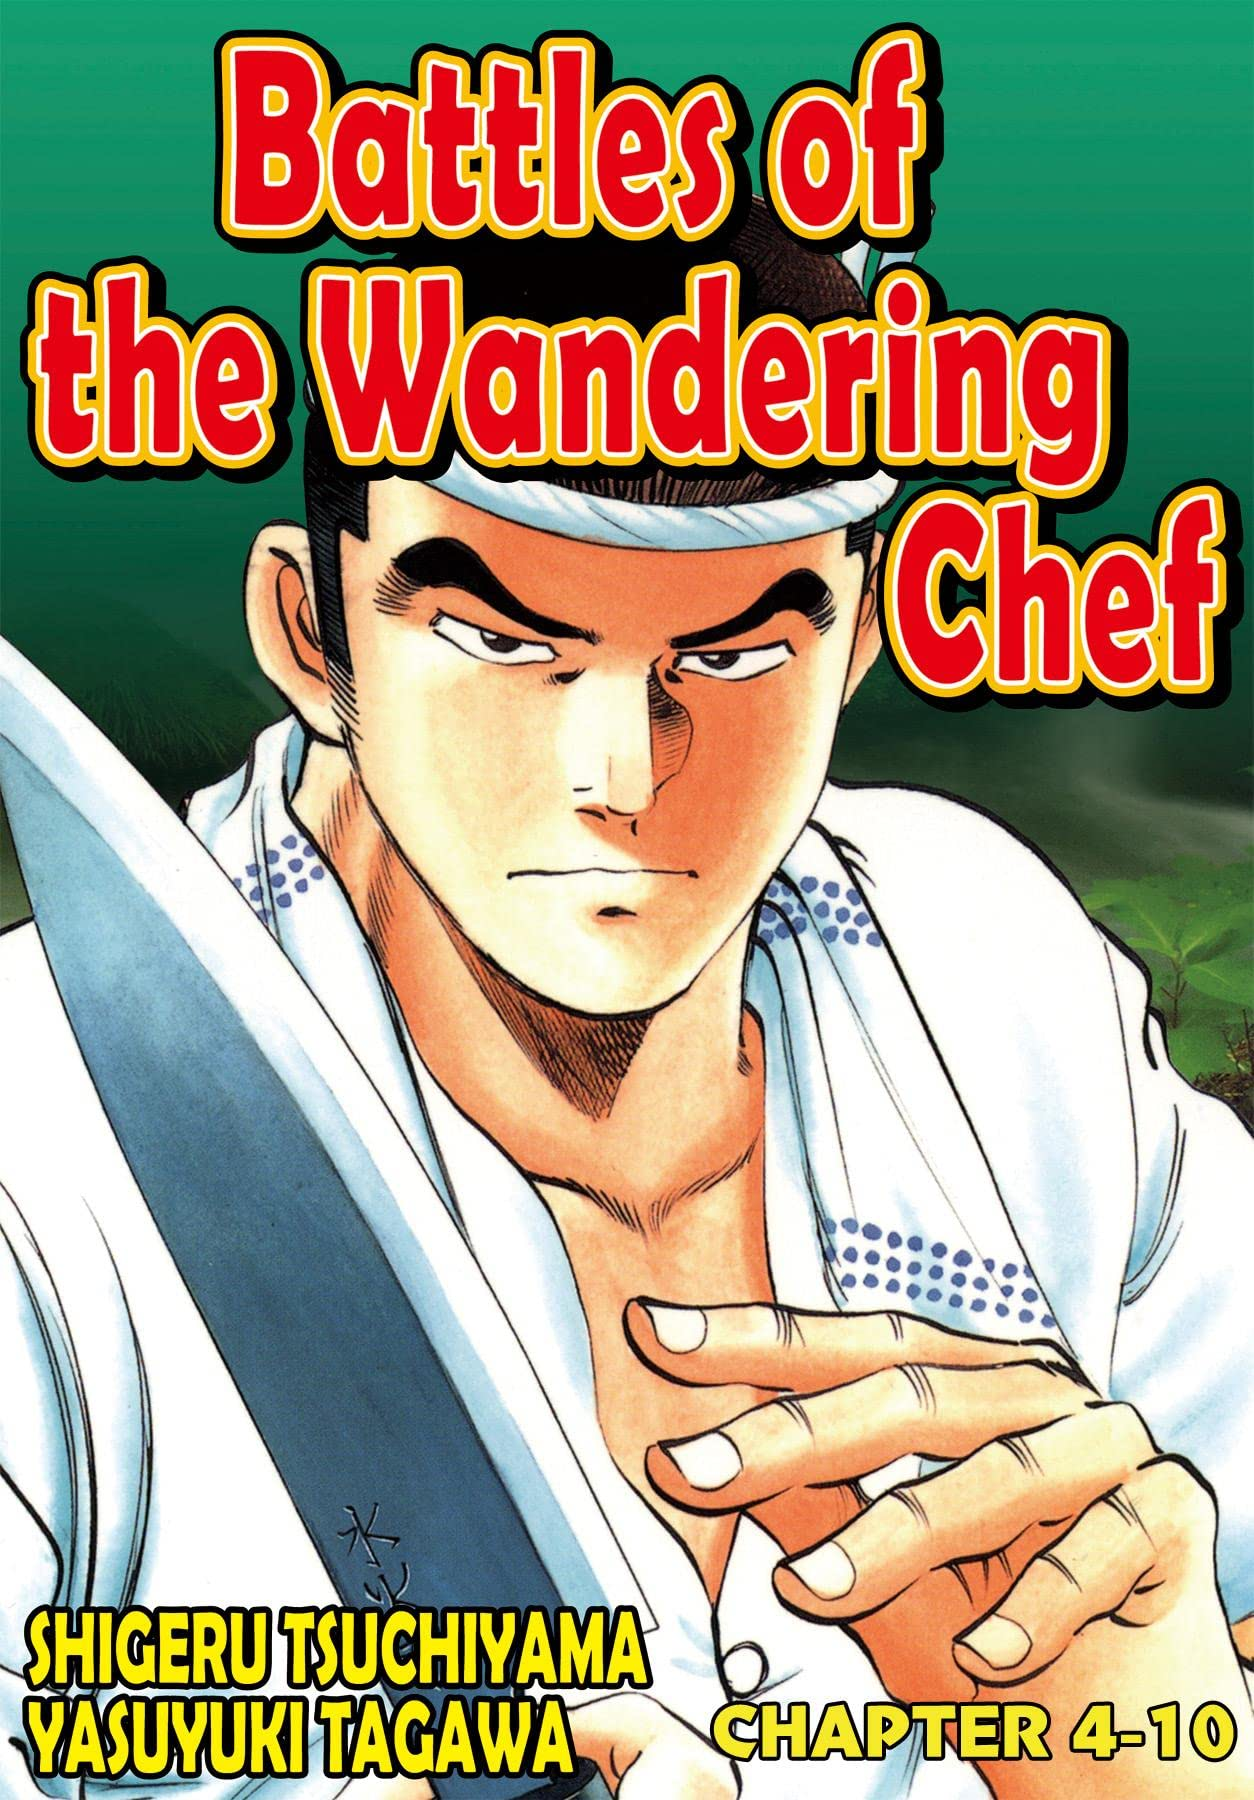 BATTLES OF THE WANDERING CHEF #33